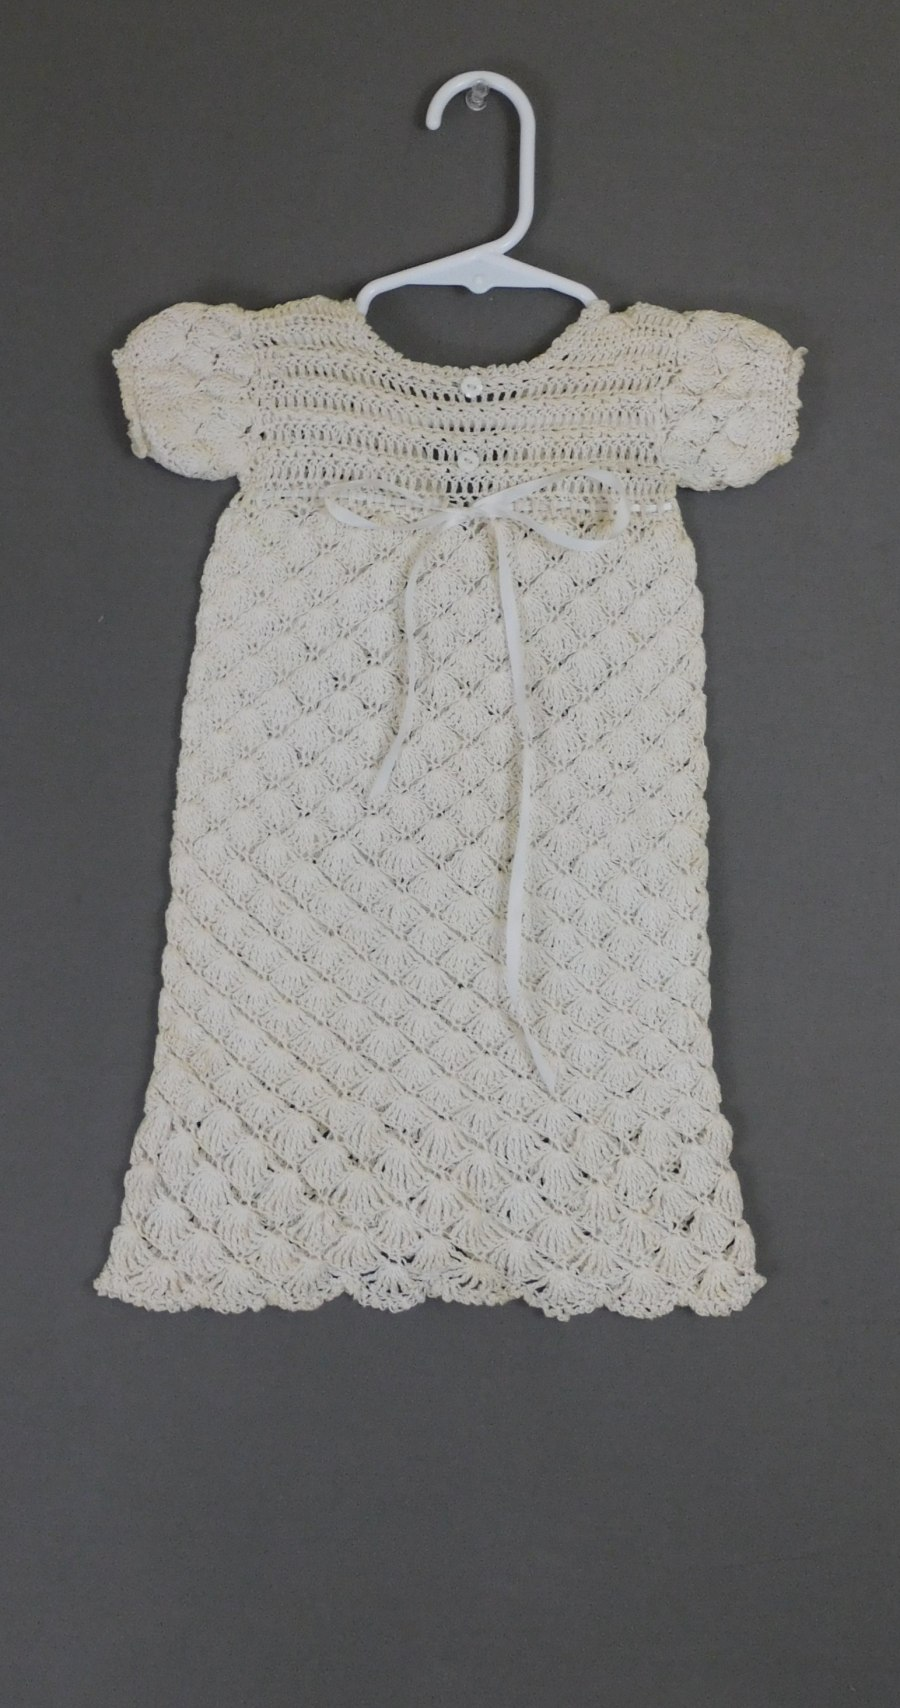 Vintage Crochet Lace Baby Infant Dress Gown, 15 inch chest, Handmade, Ivory Cotton, large doll